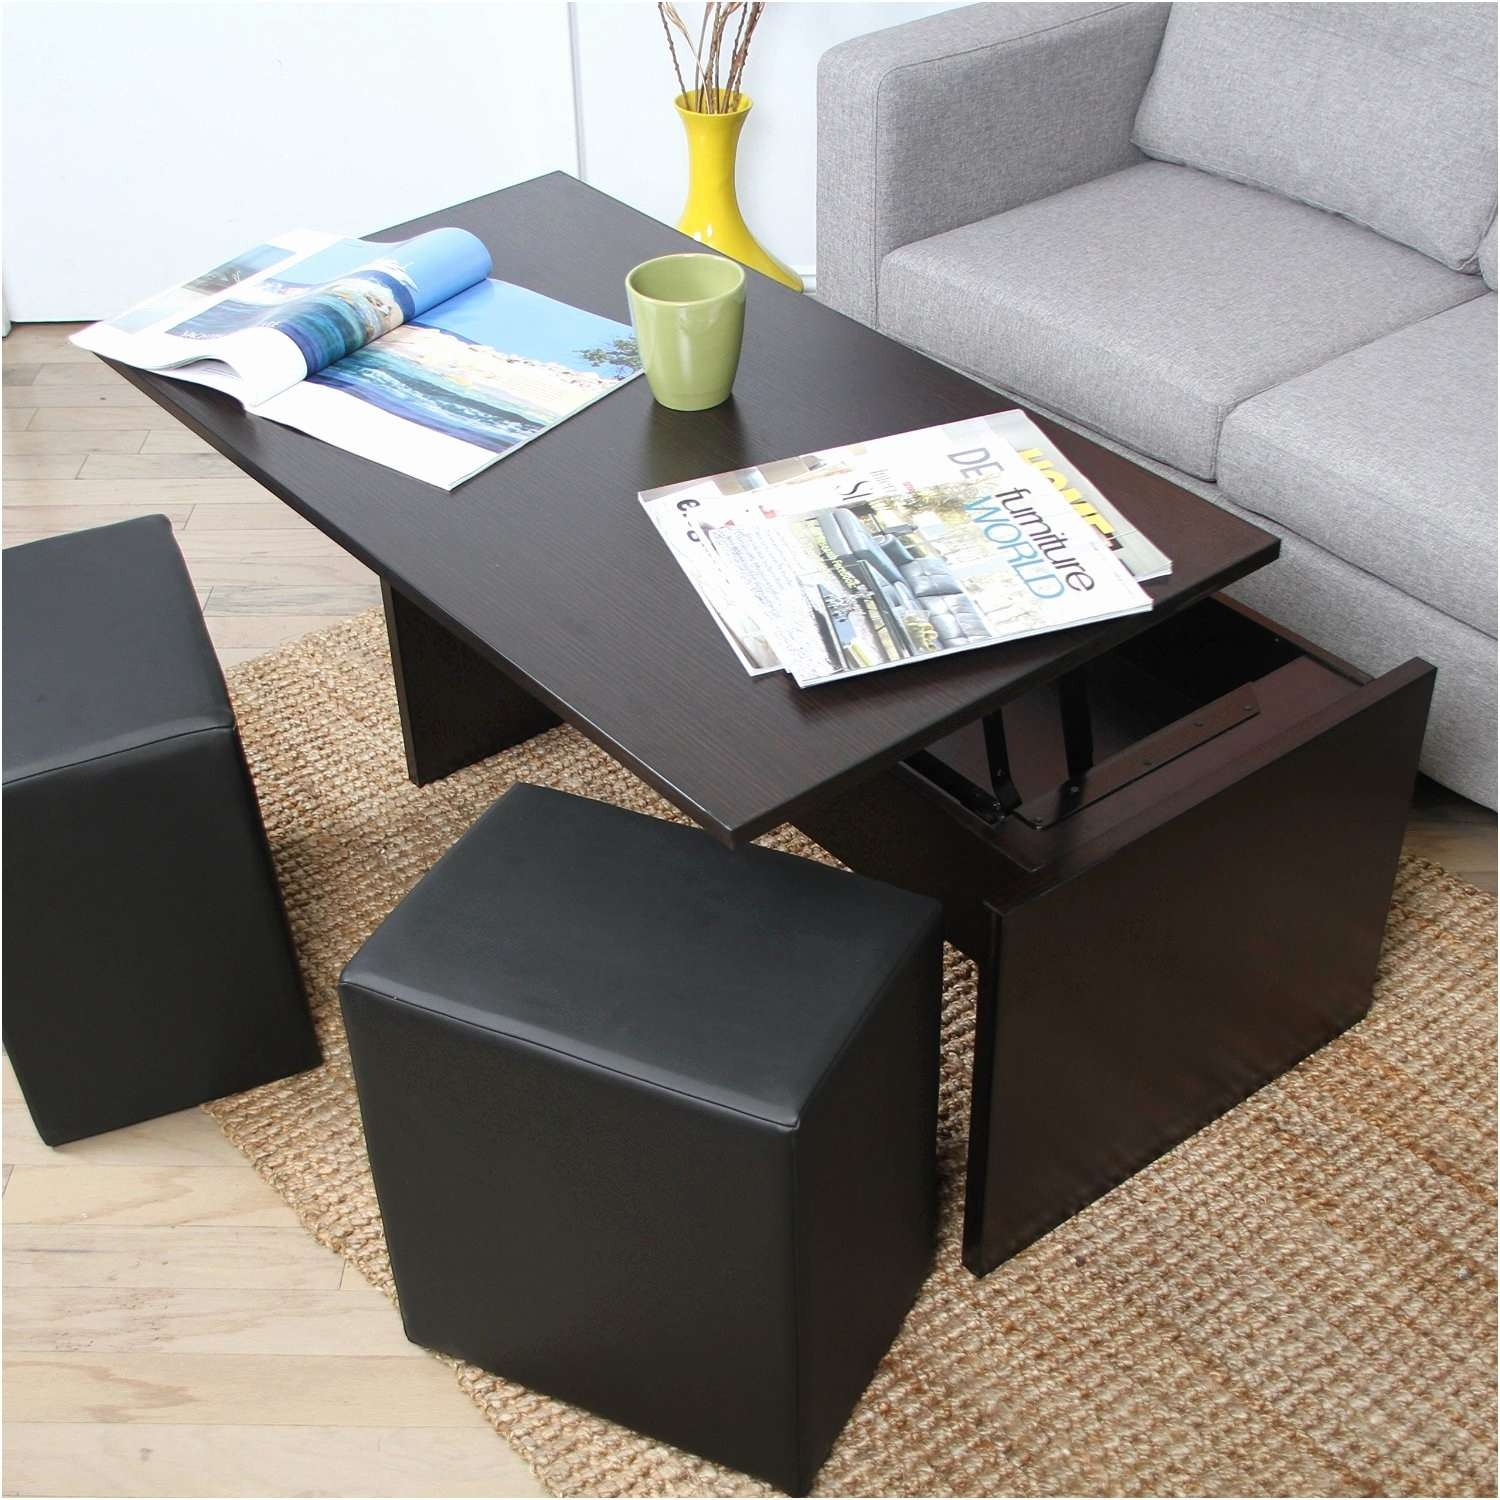 Coffee Tables : Black Rustic Coffee Table Adjustable Height Within Newest Extra Large Rustic Coffee Tables (View 5 of 20)